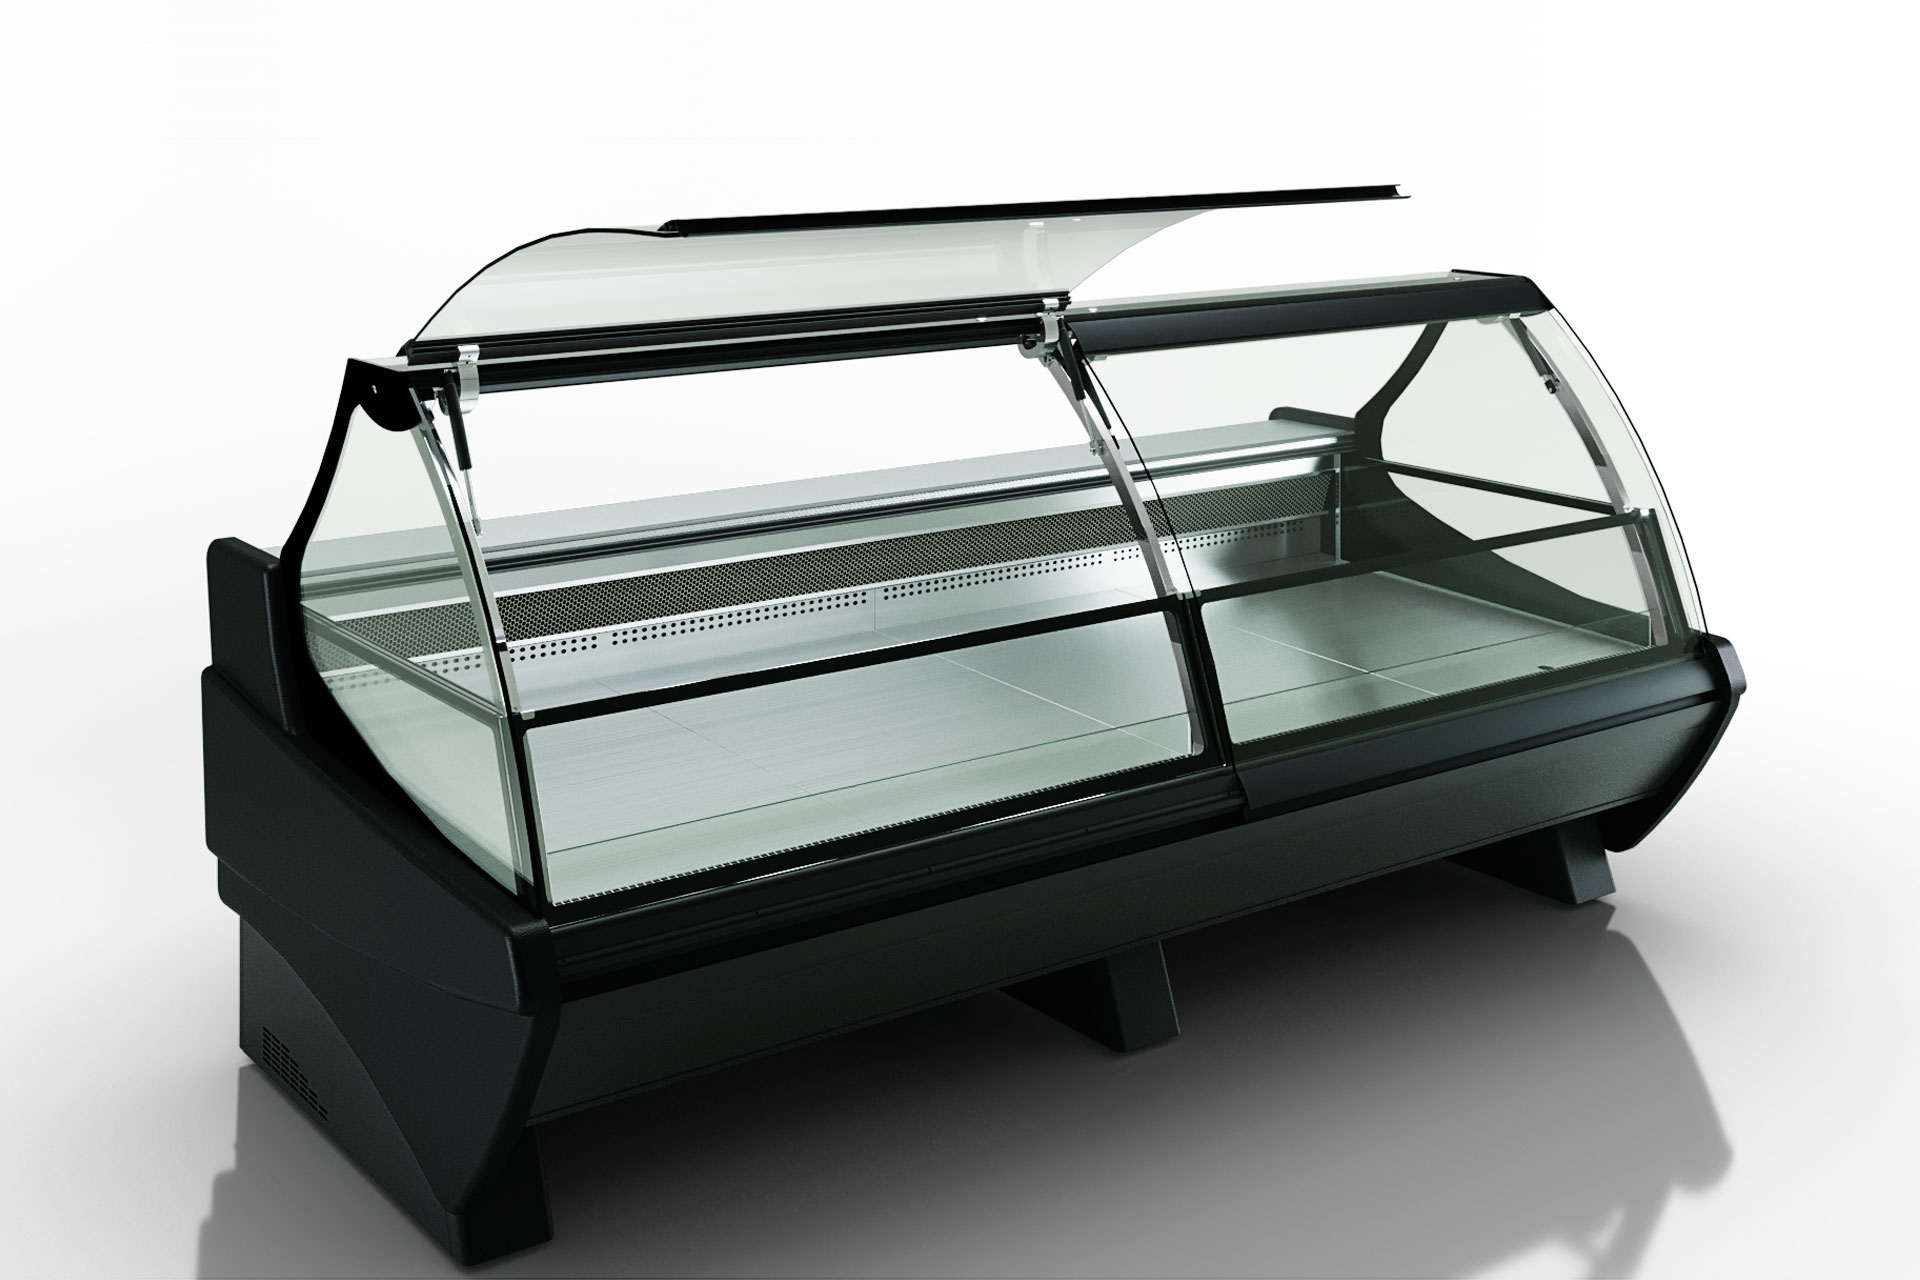 Counter Symphony luxe MG 120 LT PS 125-DLM